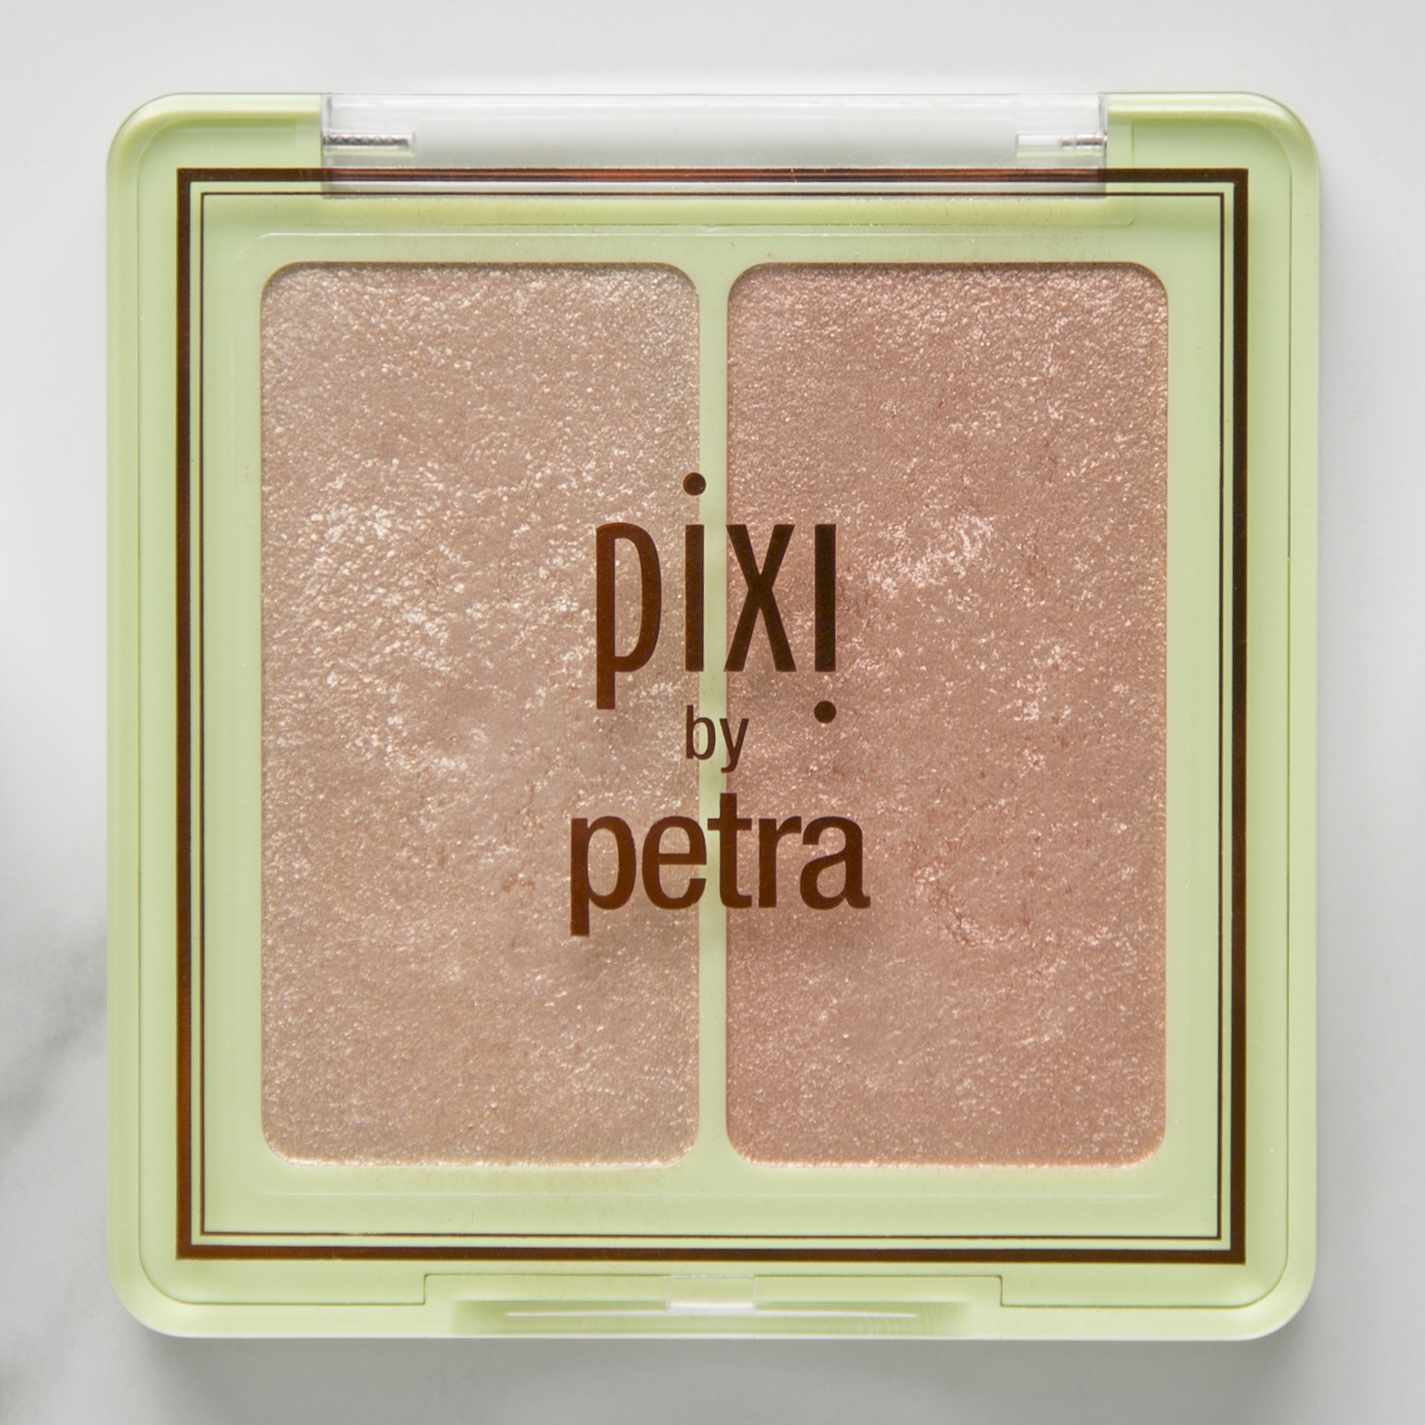 Pixi Glow- Gossamer Duo in Subtle Sunrise